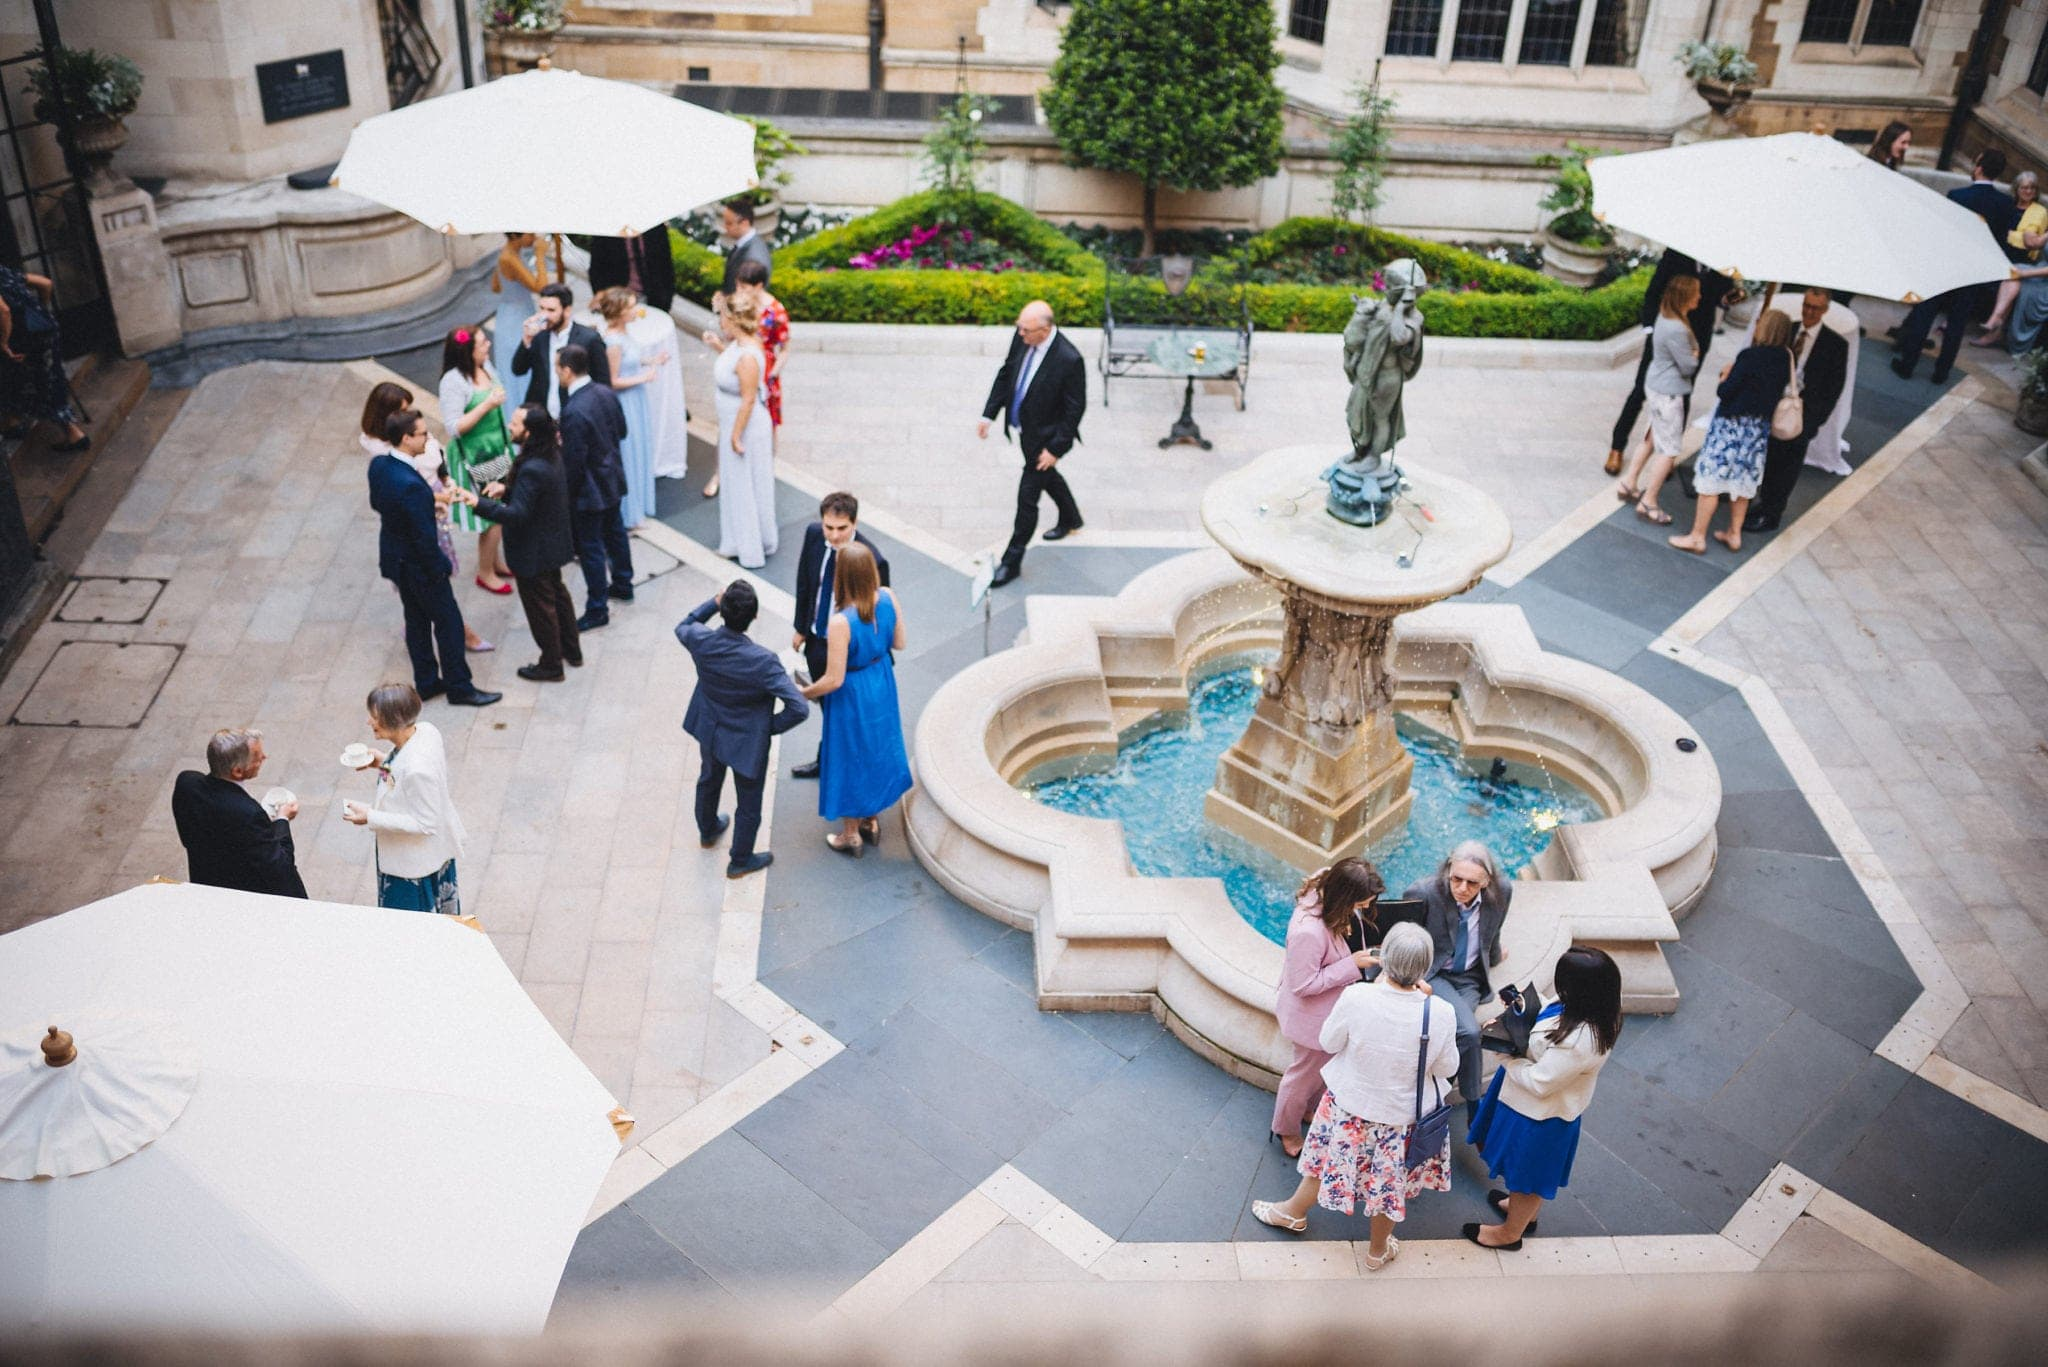 Shot from above overlooking Merchant Taylors Hall courtyard and fountain